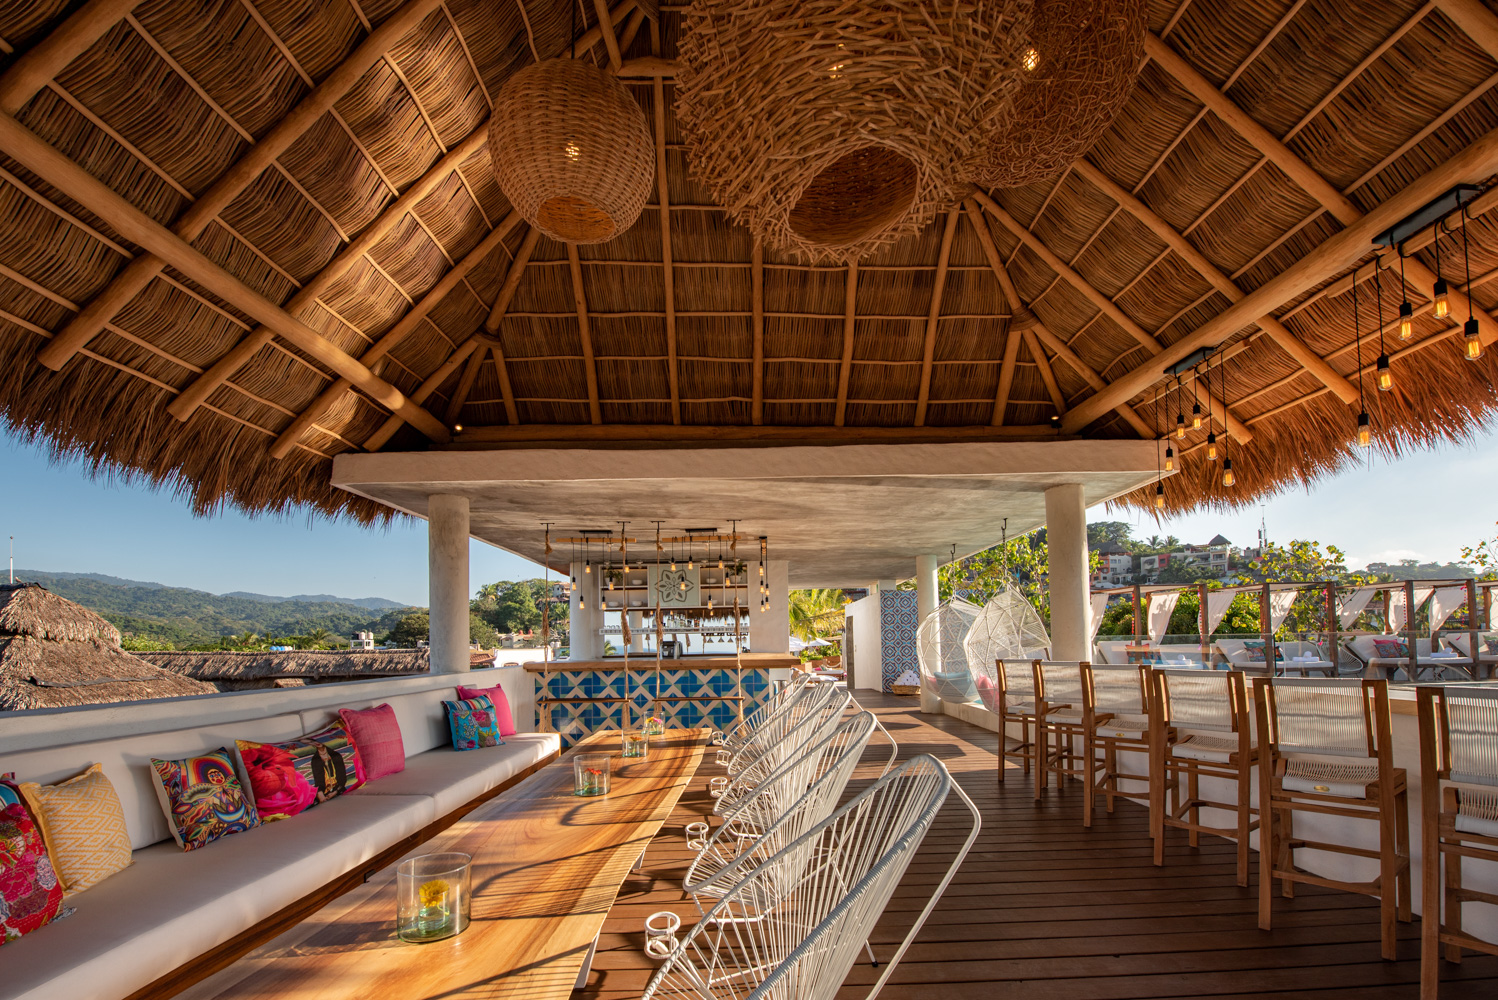 OUR ROOF BAR GIVE YOU THE BEST VIEW OF SAYULITA